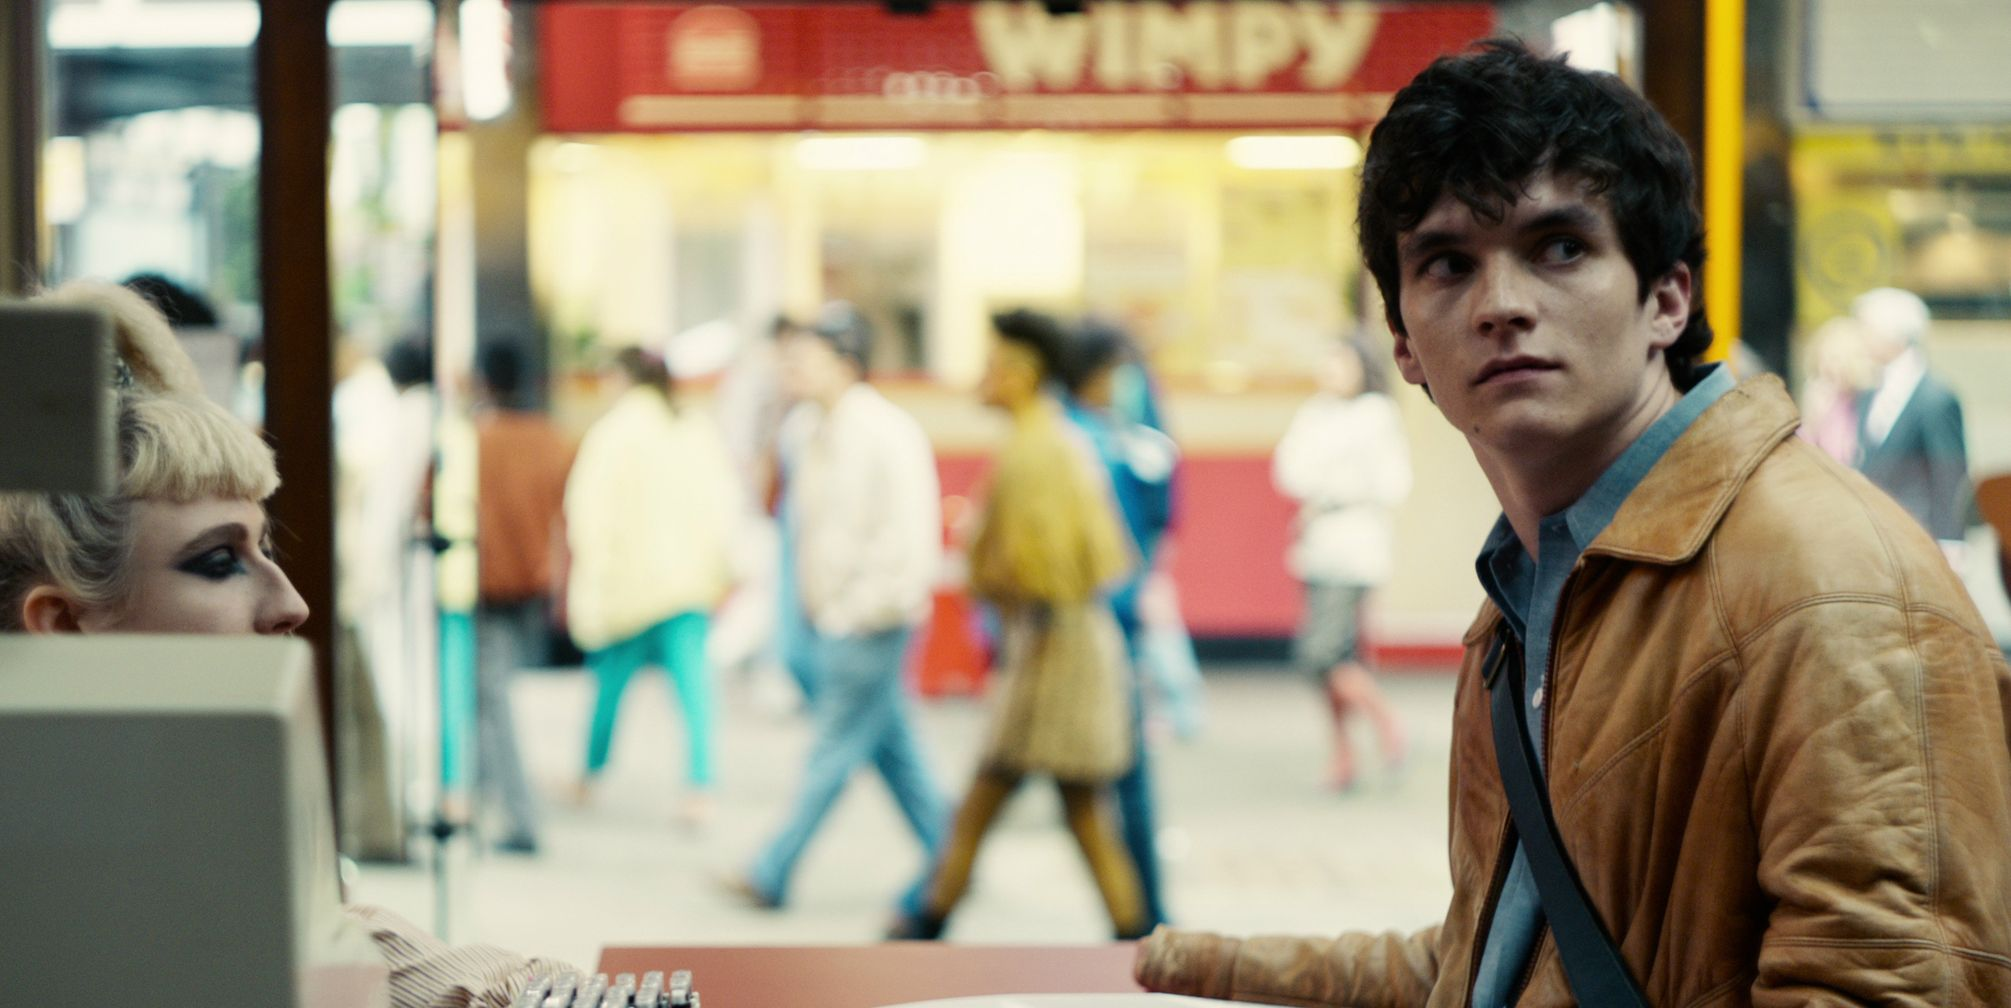 Fionn Whitehead in Black Mirror: Bandersnatch